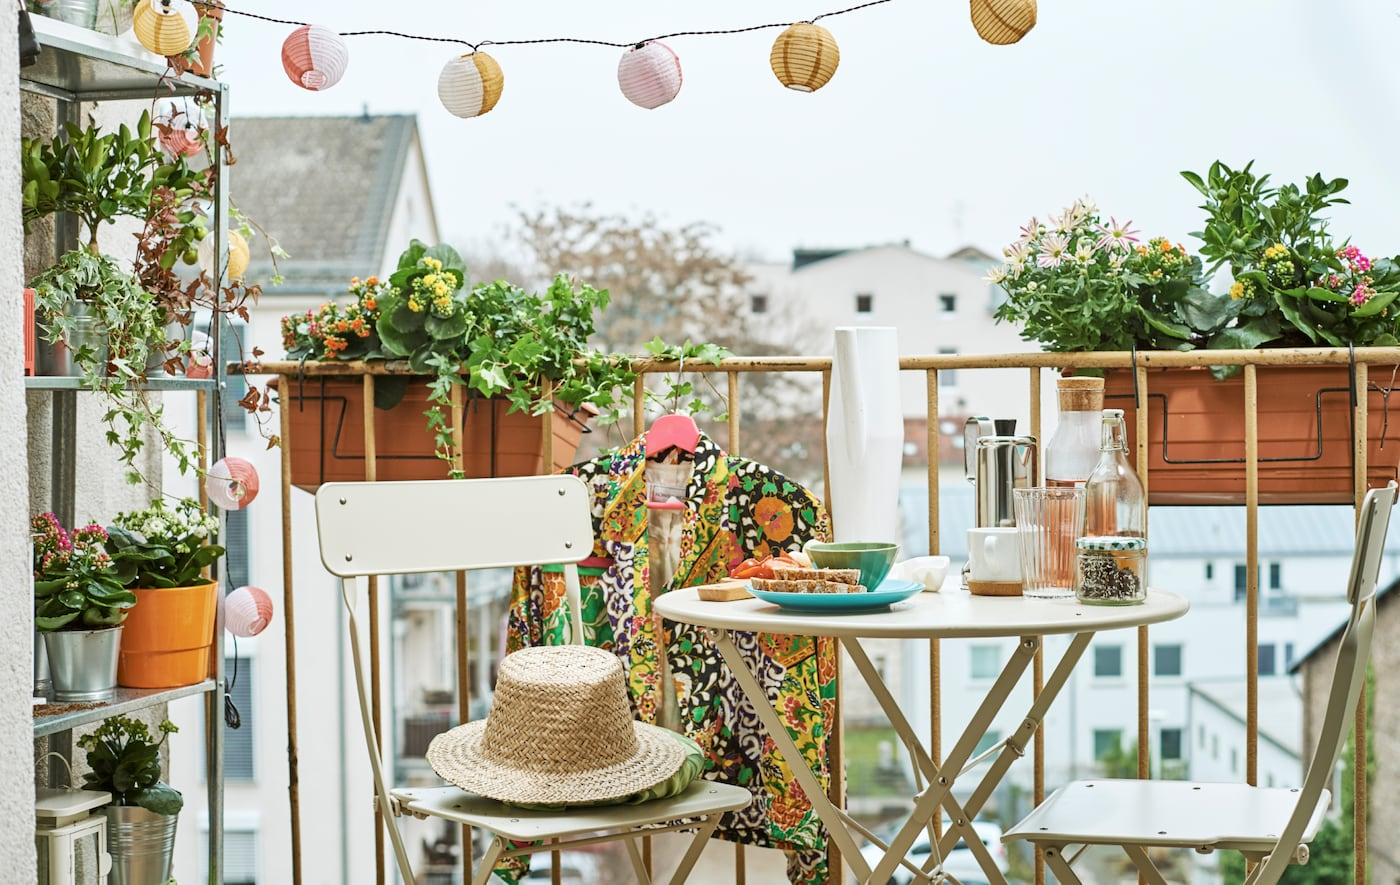 Turn a city balcony into a relaxed spot to eat out - IKEA